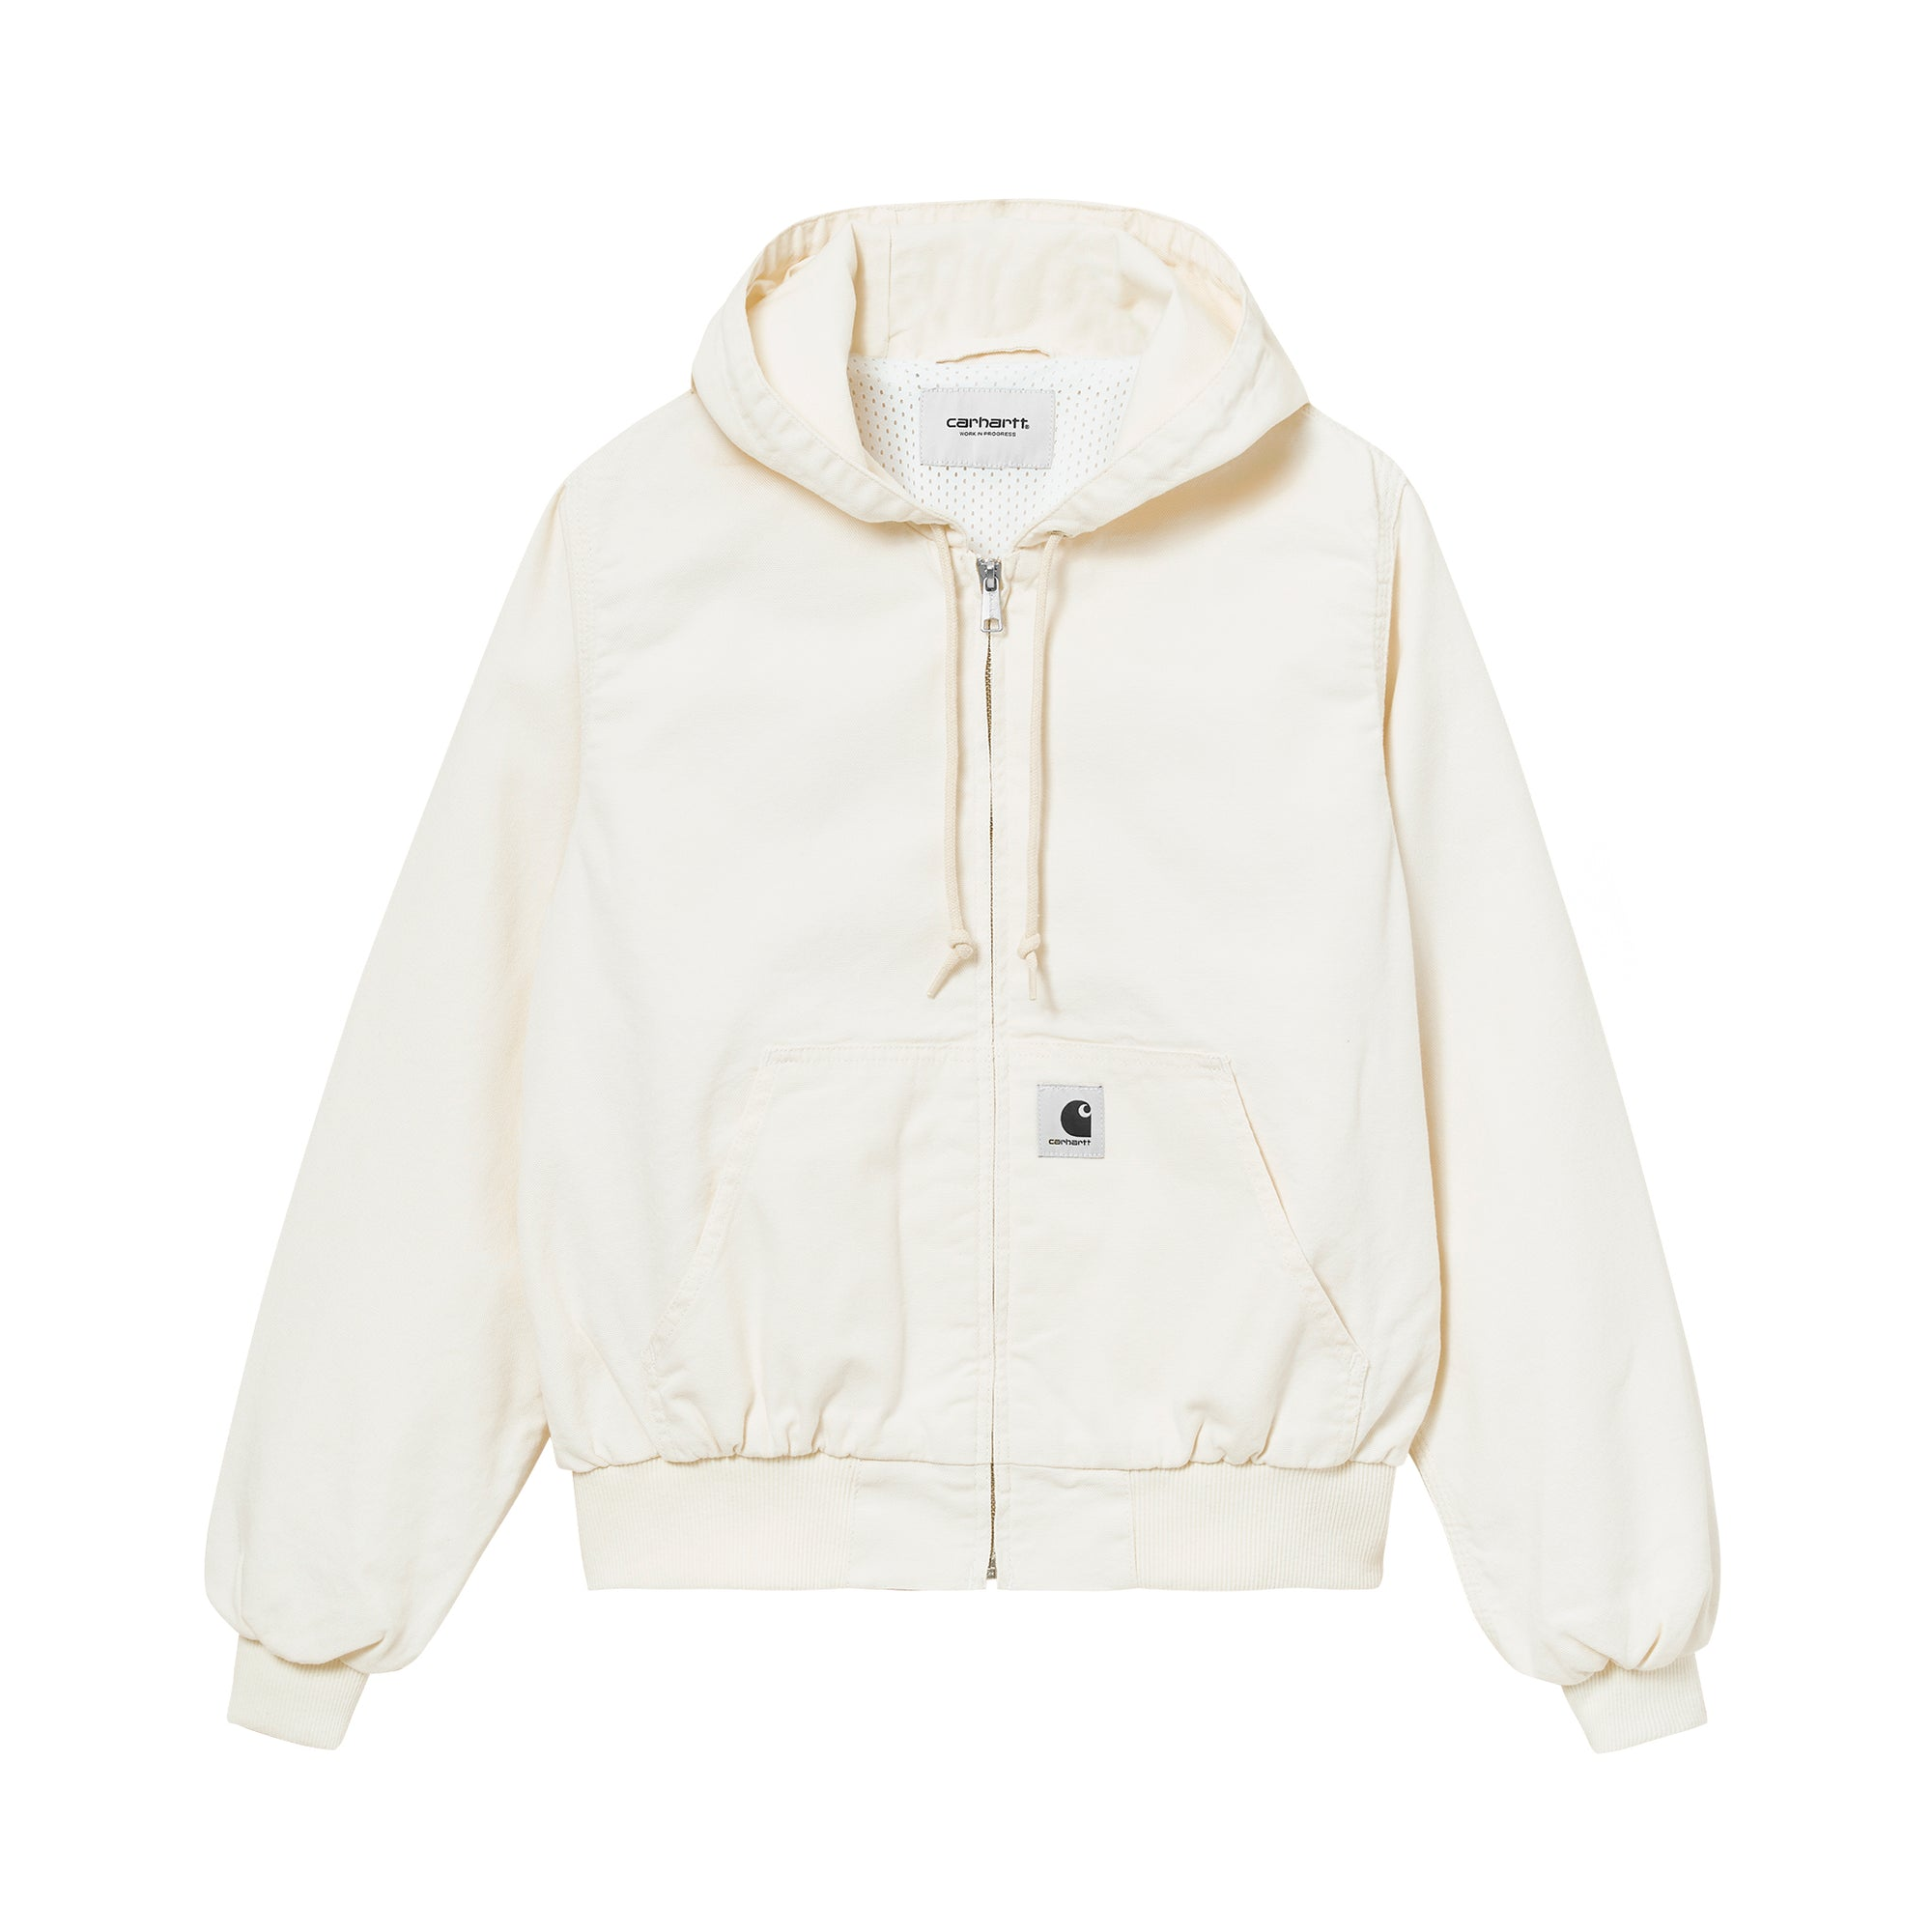 Carhartt WIP Womens Active Jacket: Wax Rinsed - The Union Project